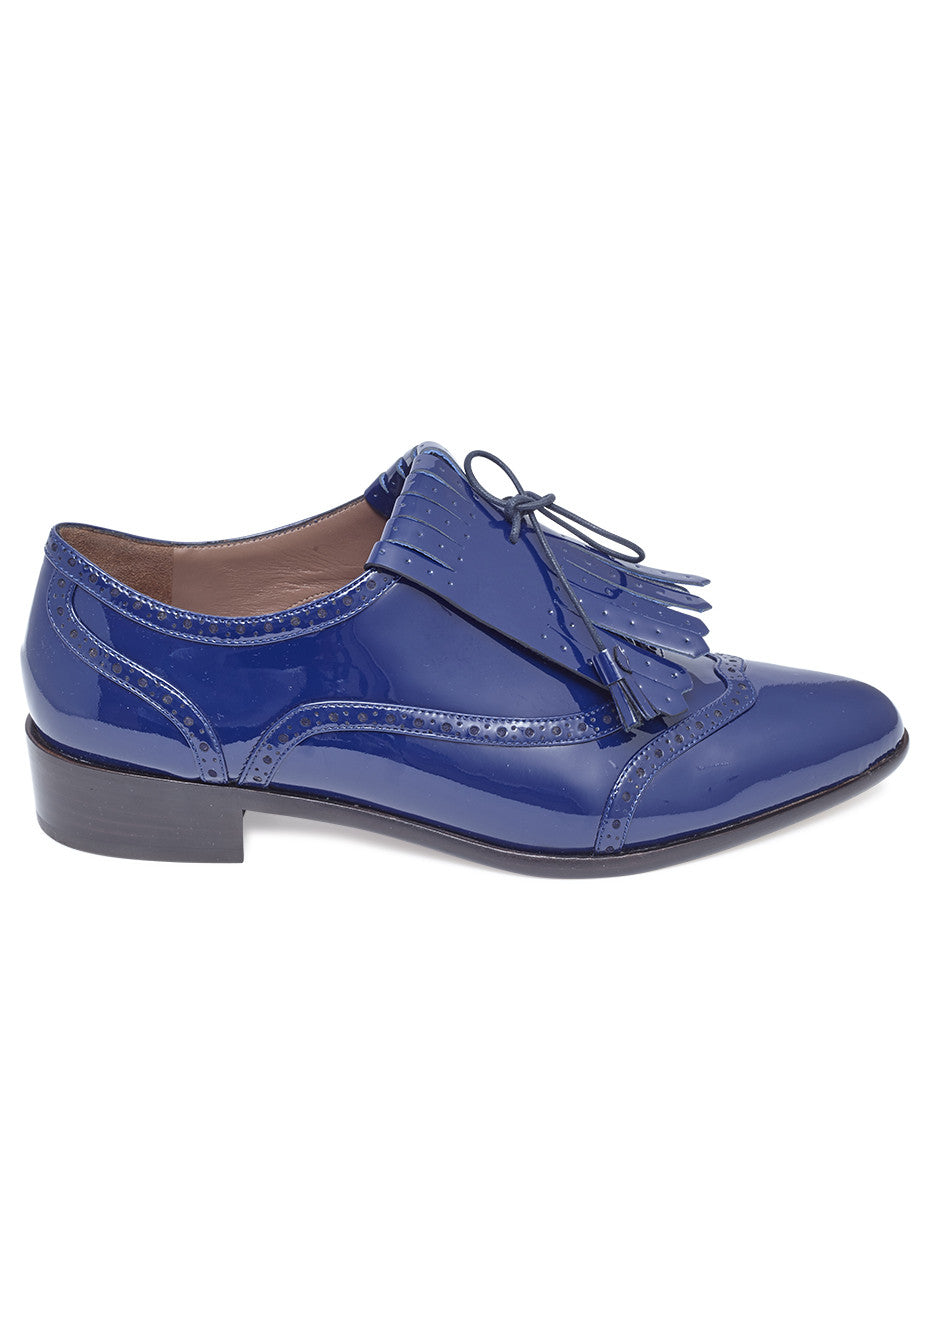 Glenna Oxford Shoes